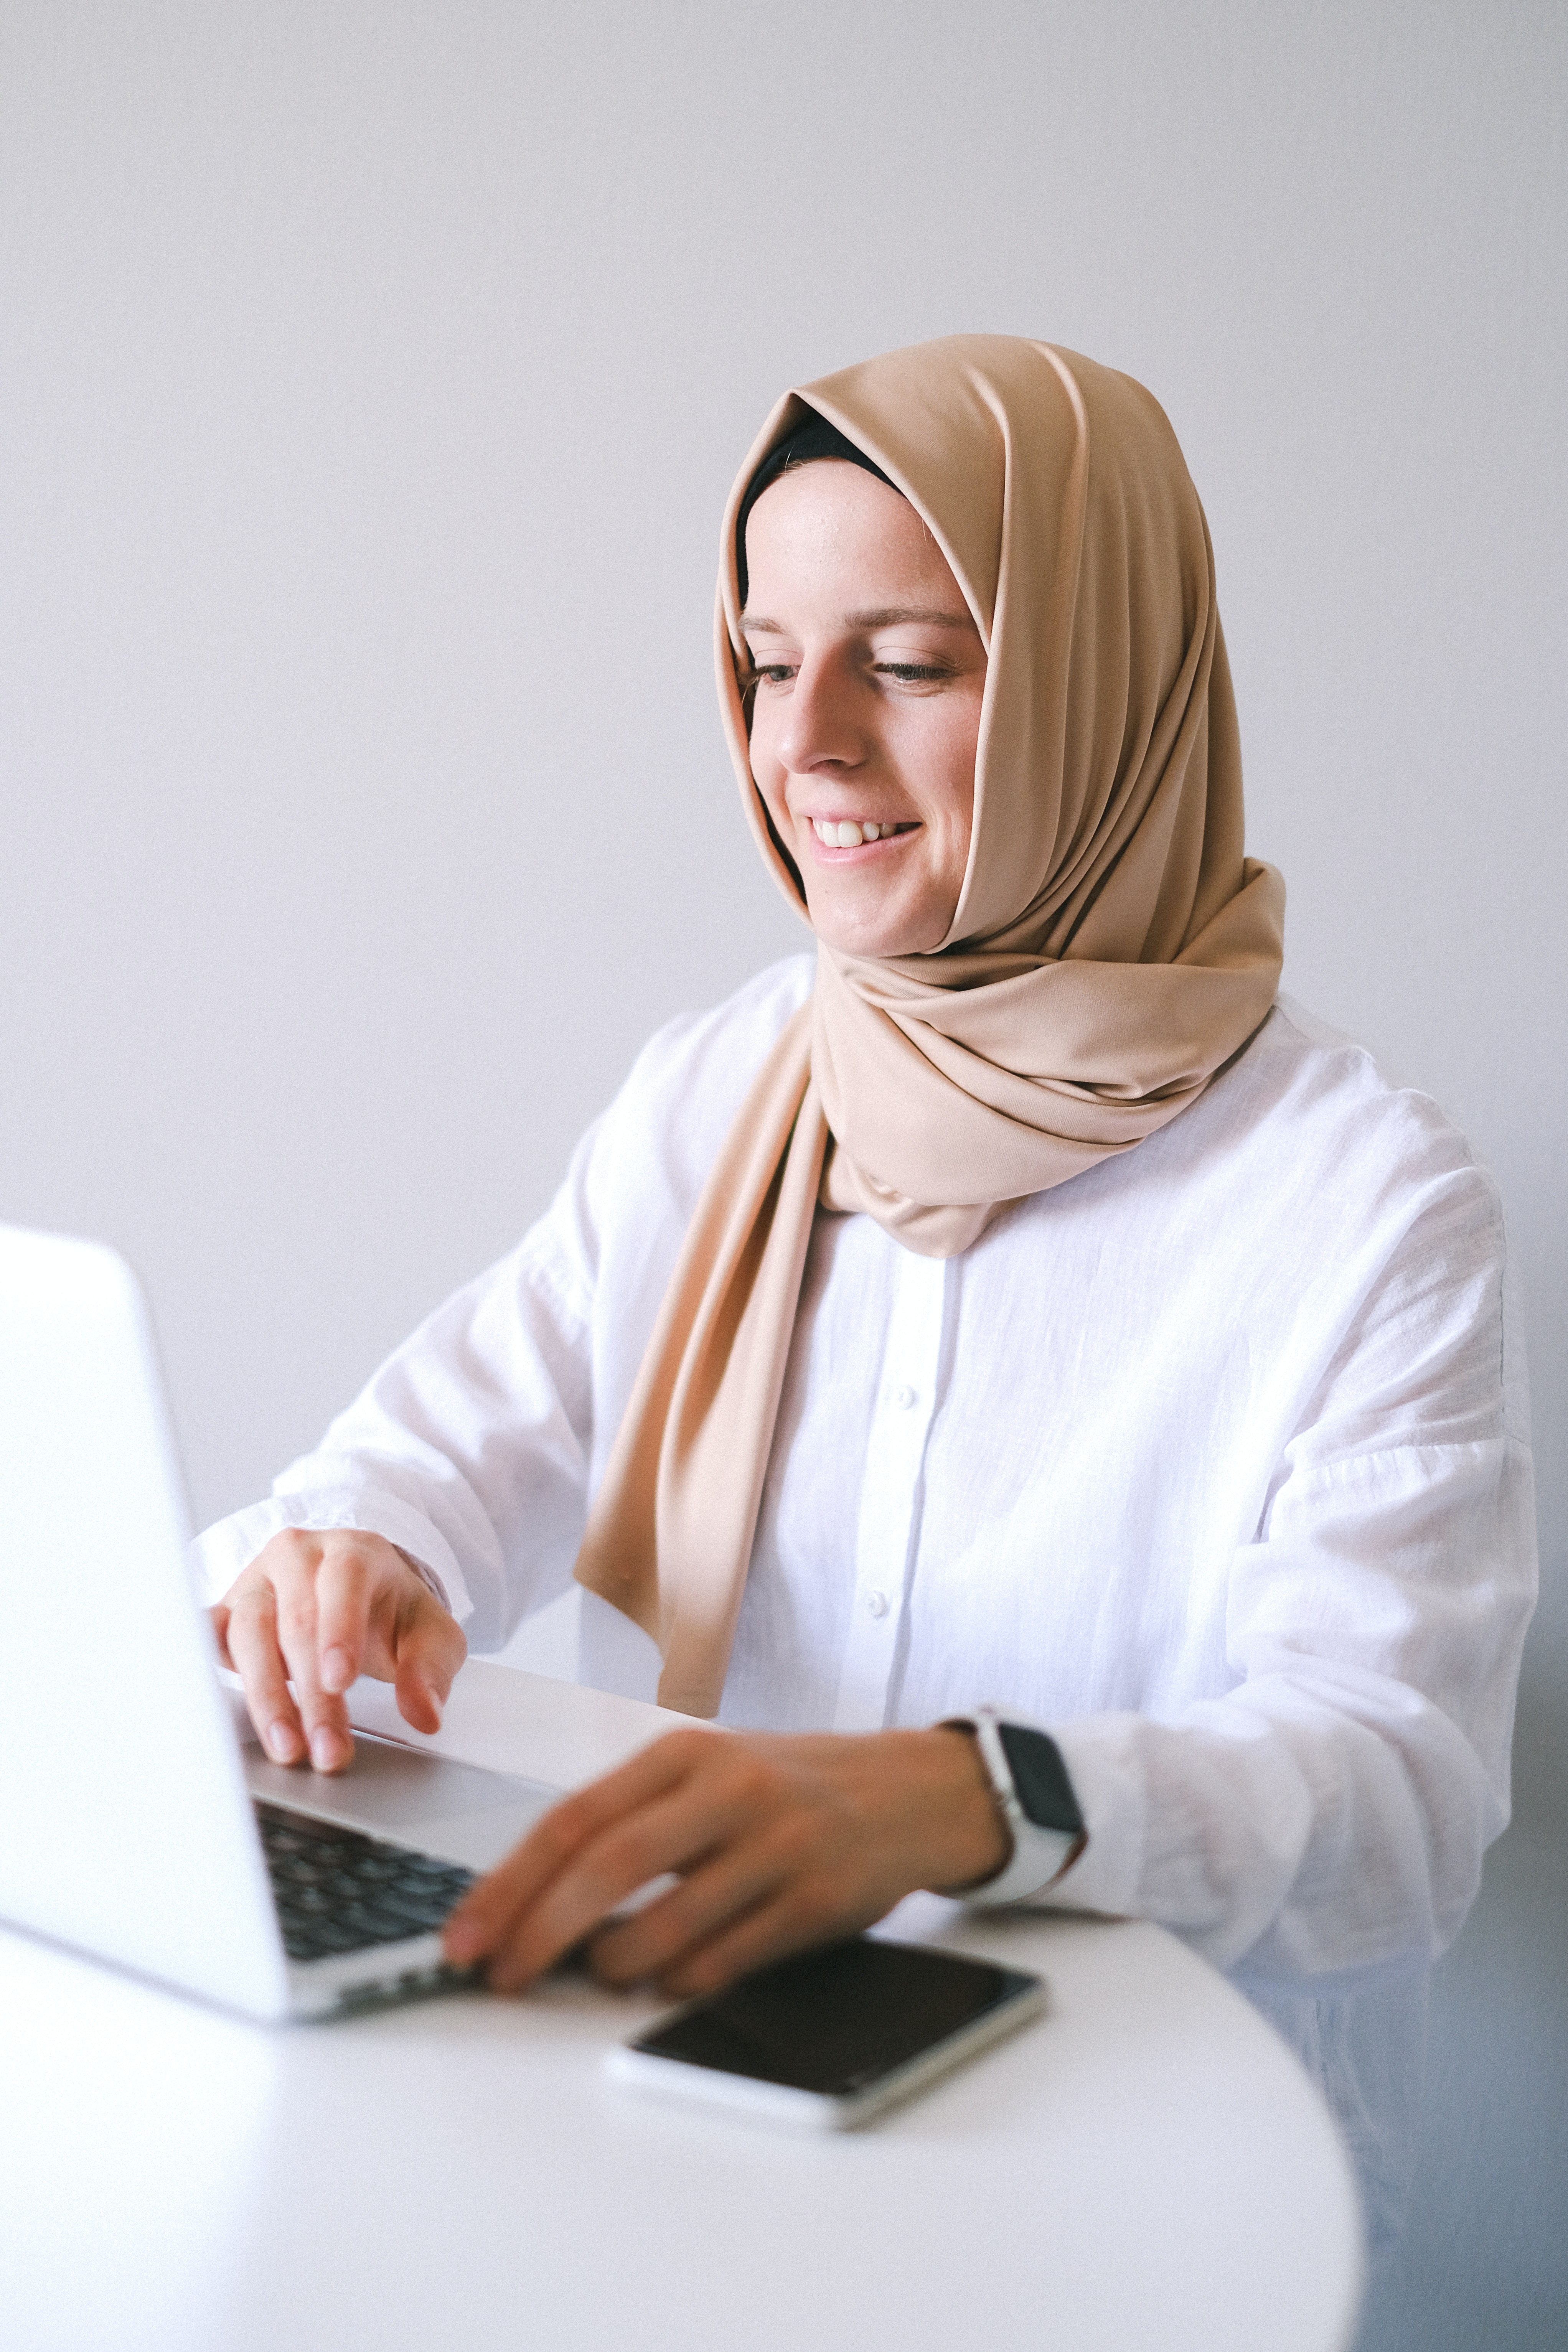 Person studying on a laptop